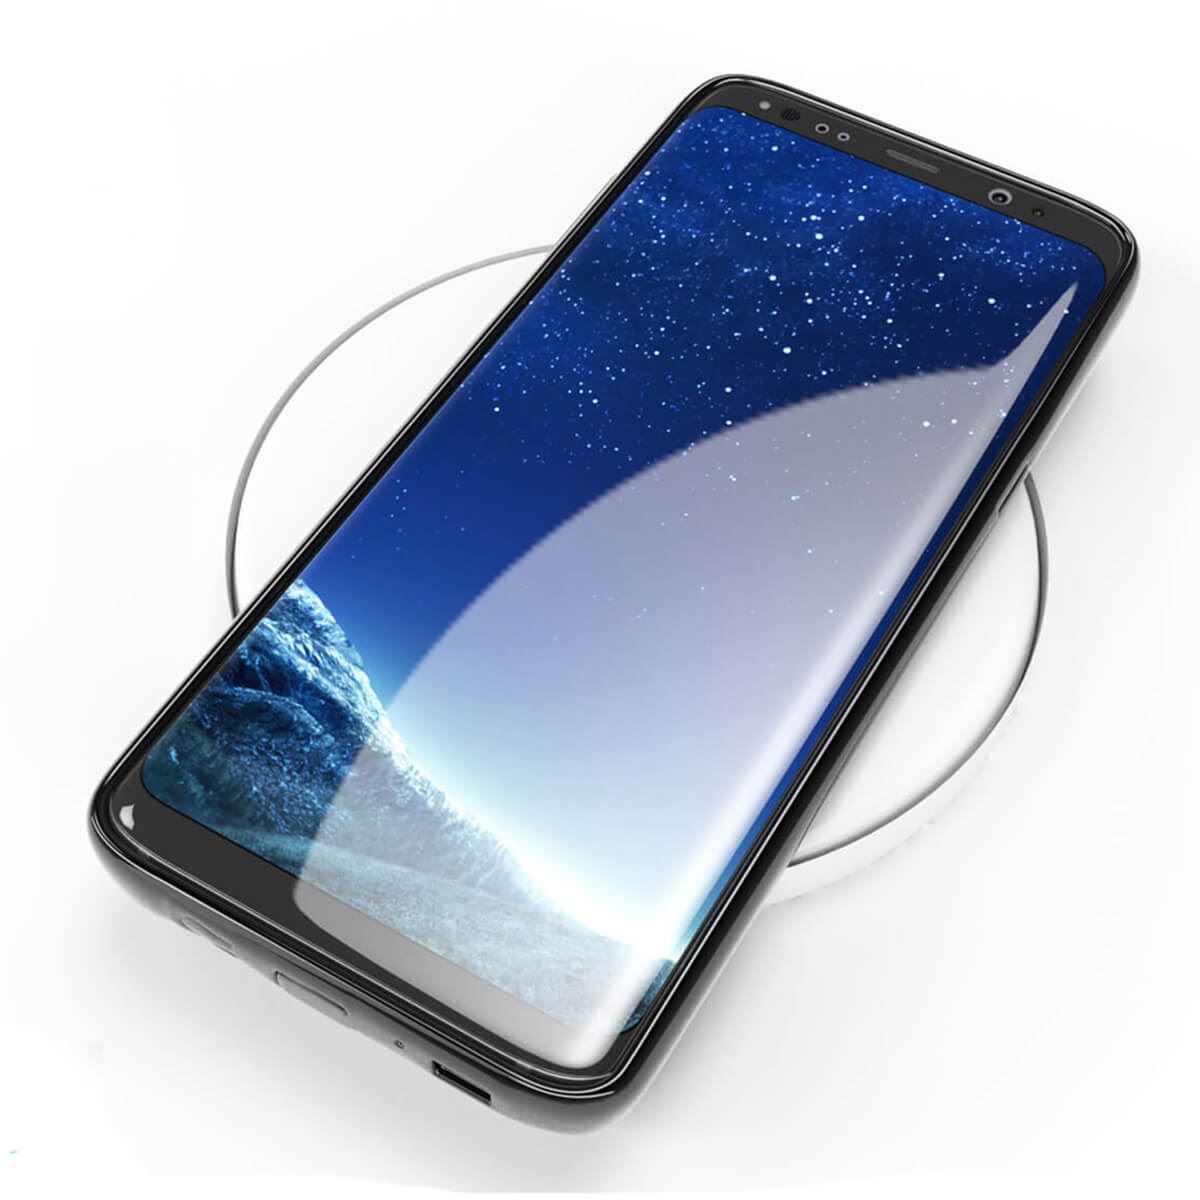 Shockproof-TPU-Bumper-Case-Samsung-Galaxy-S8-Plus-Note-8-Gel-Crystal-Clear-Cover thumbnail 3